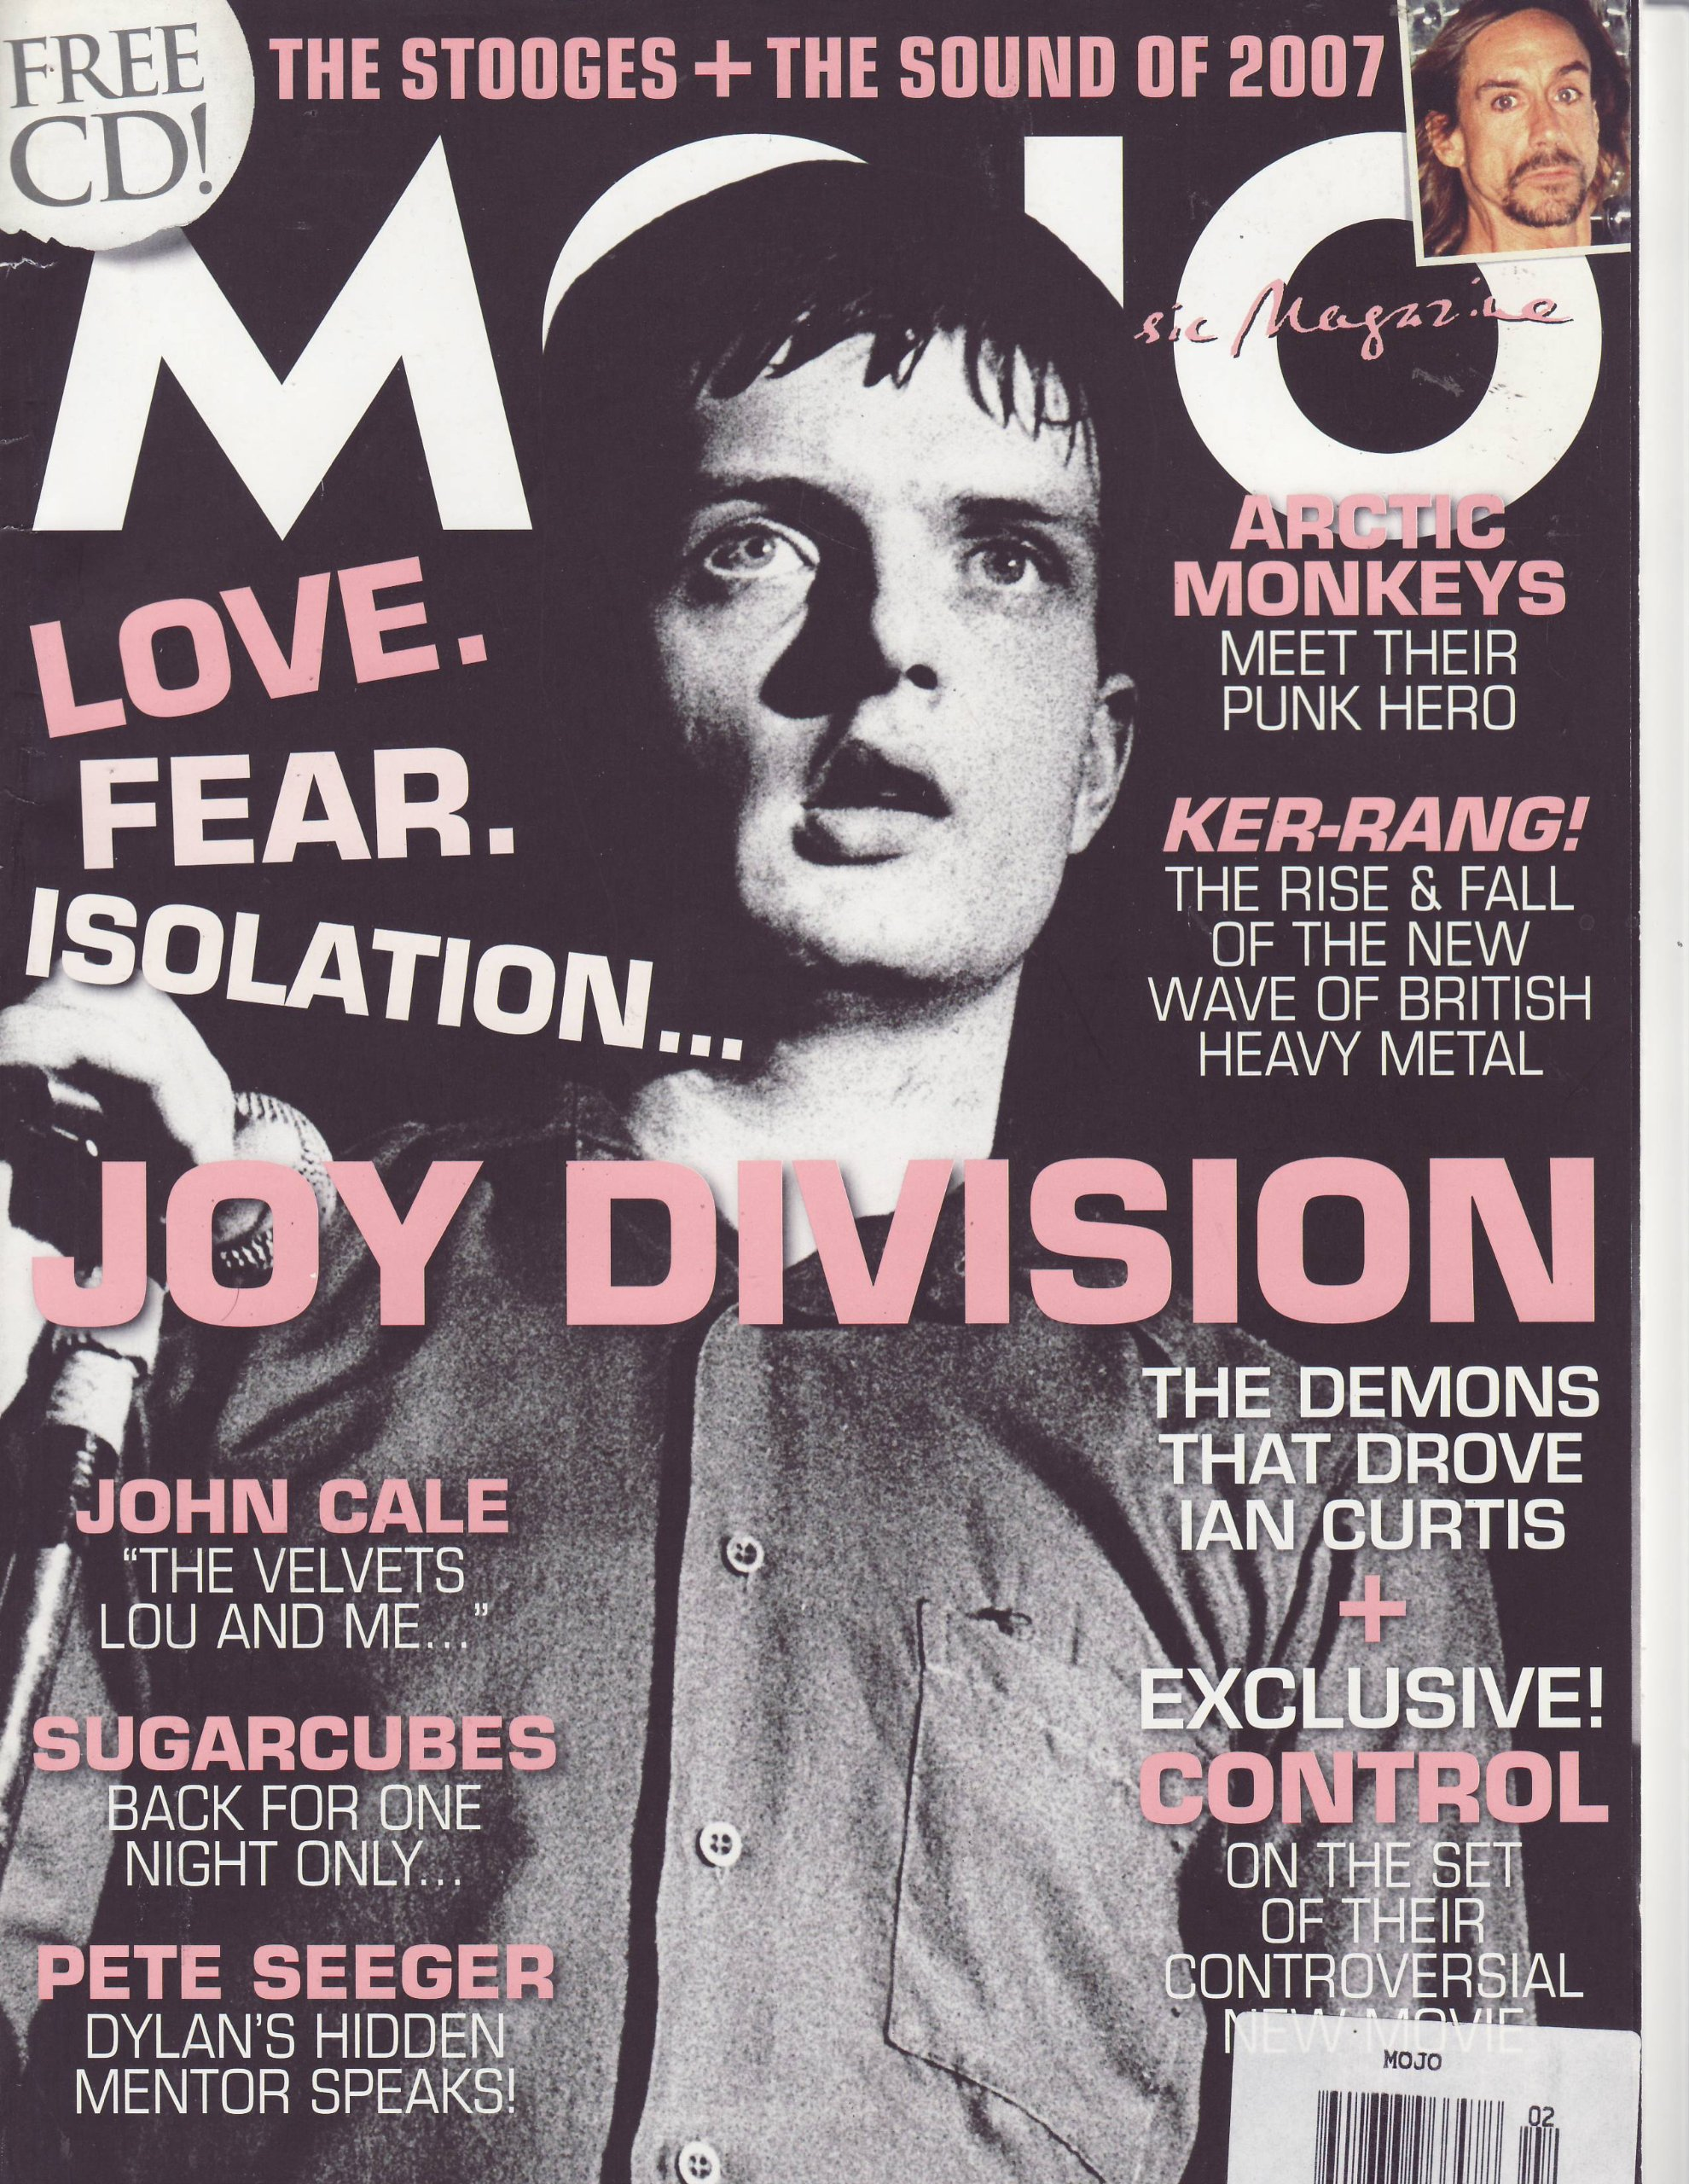 Download Mojo Magazine - February 2007 - Issue # 159 - Joy Division pdf